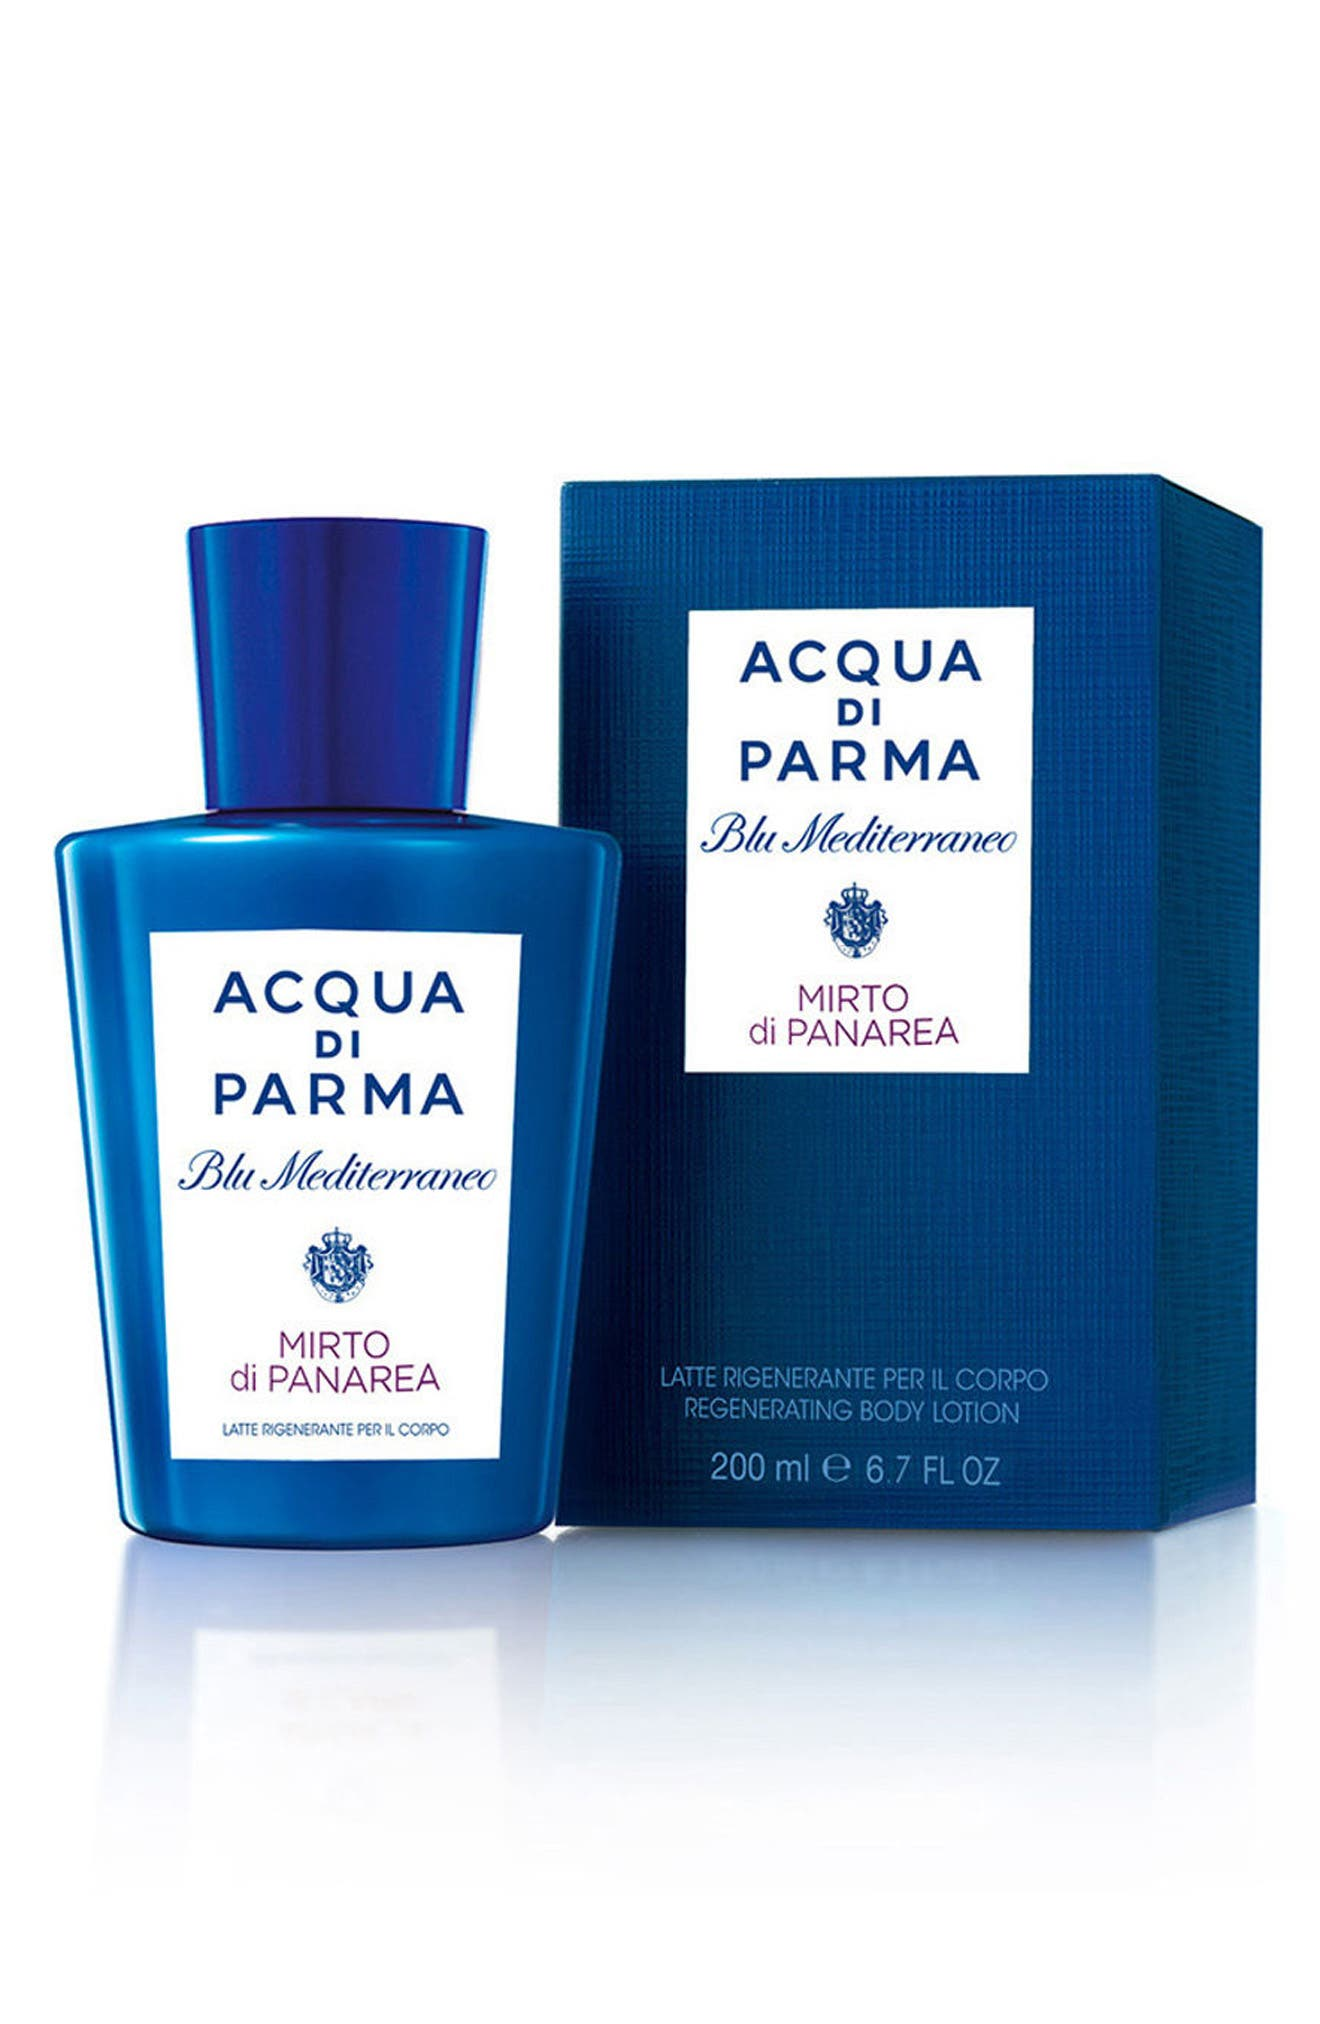 Alternate Image 2  - Acqua di Parma 'Blu Mediterraneo' Mirto di Panarea Body Lotion